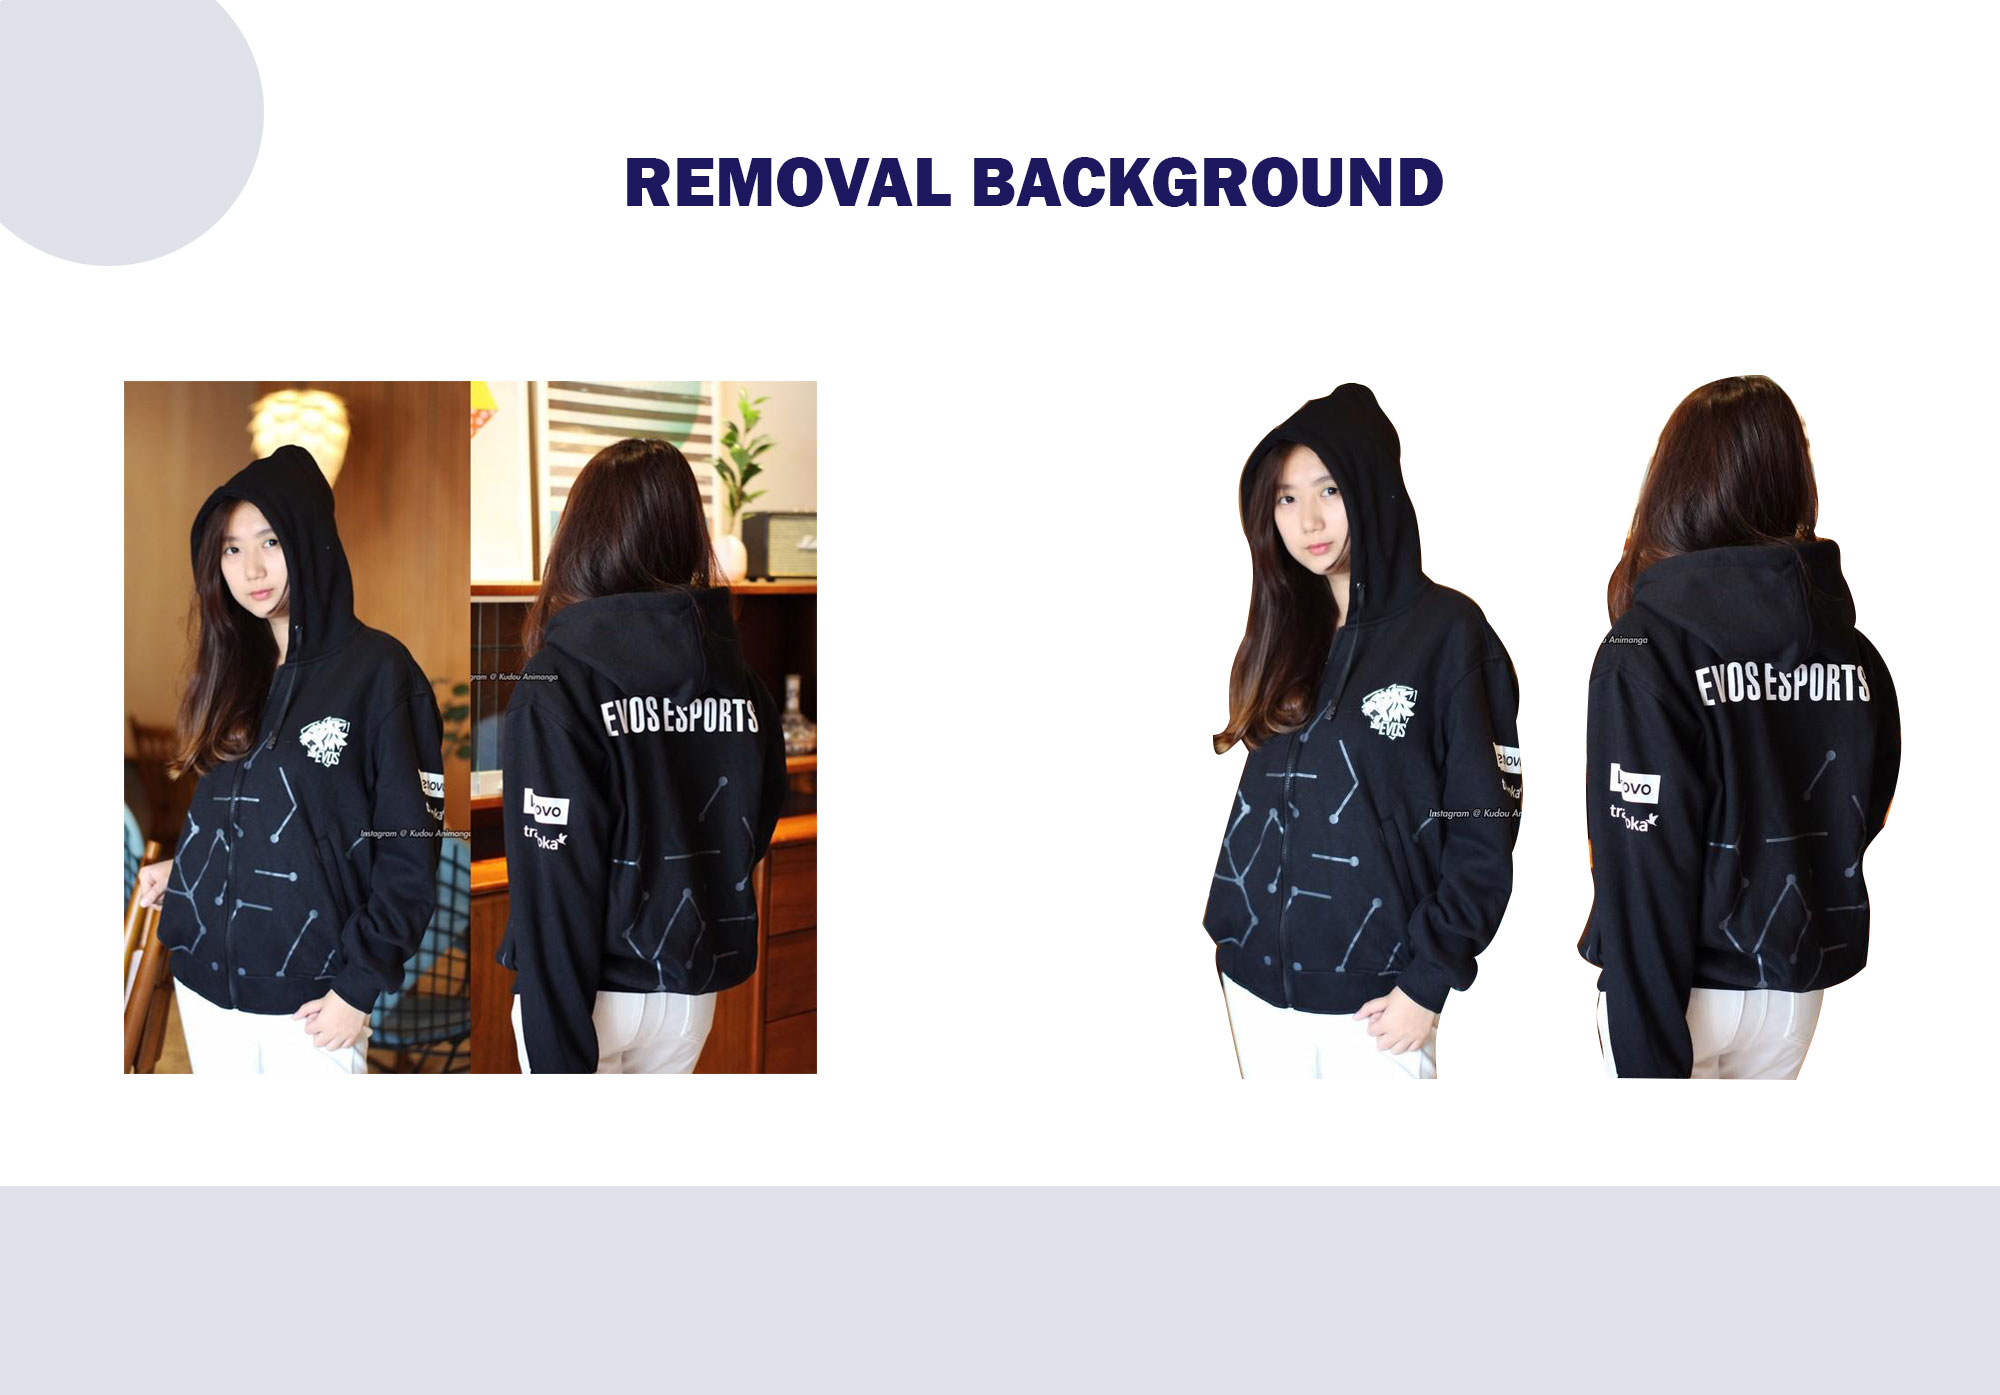 5 removal background Images with Best Quality and Fast Service